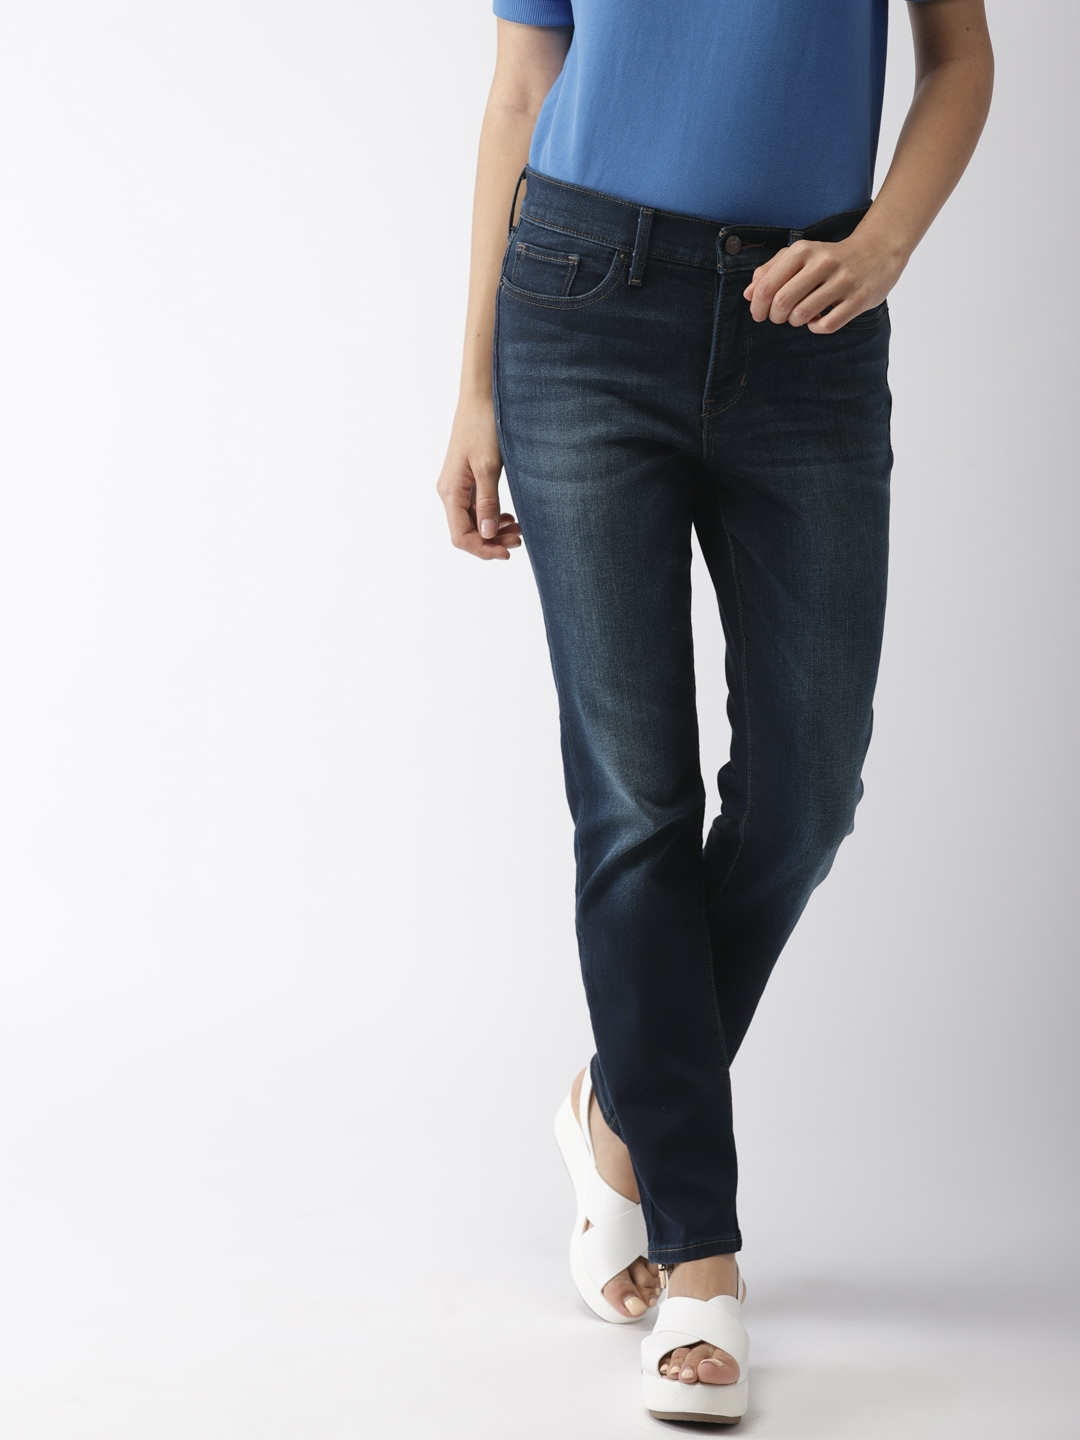 3a8bf18f Levis Nail Polish Jeans - Buy Levis Nail Polish Jeans online in India